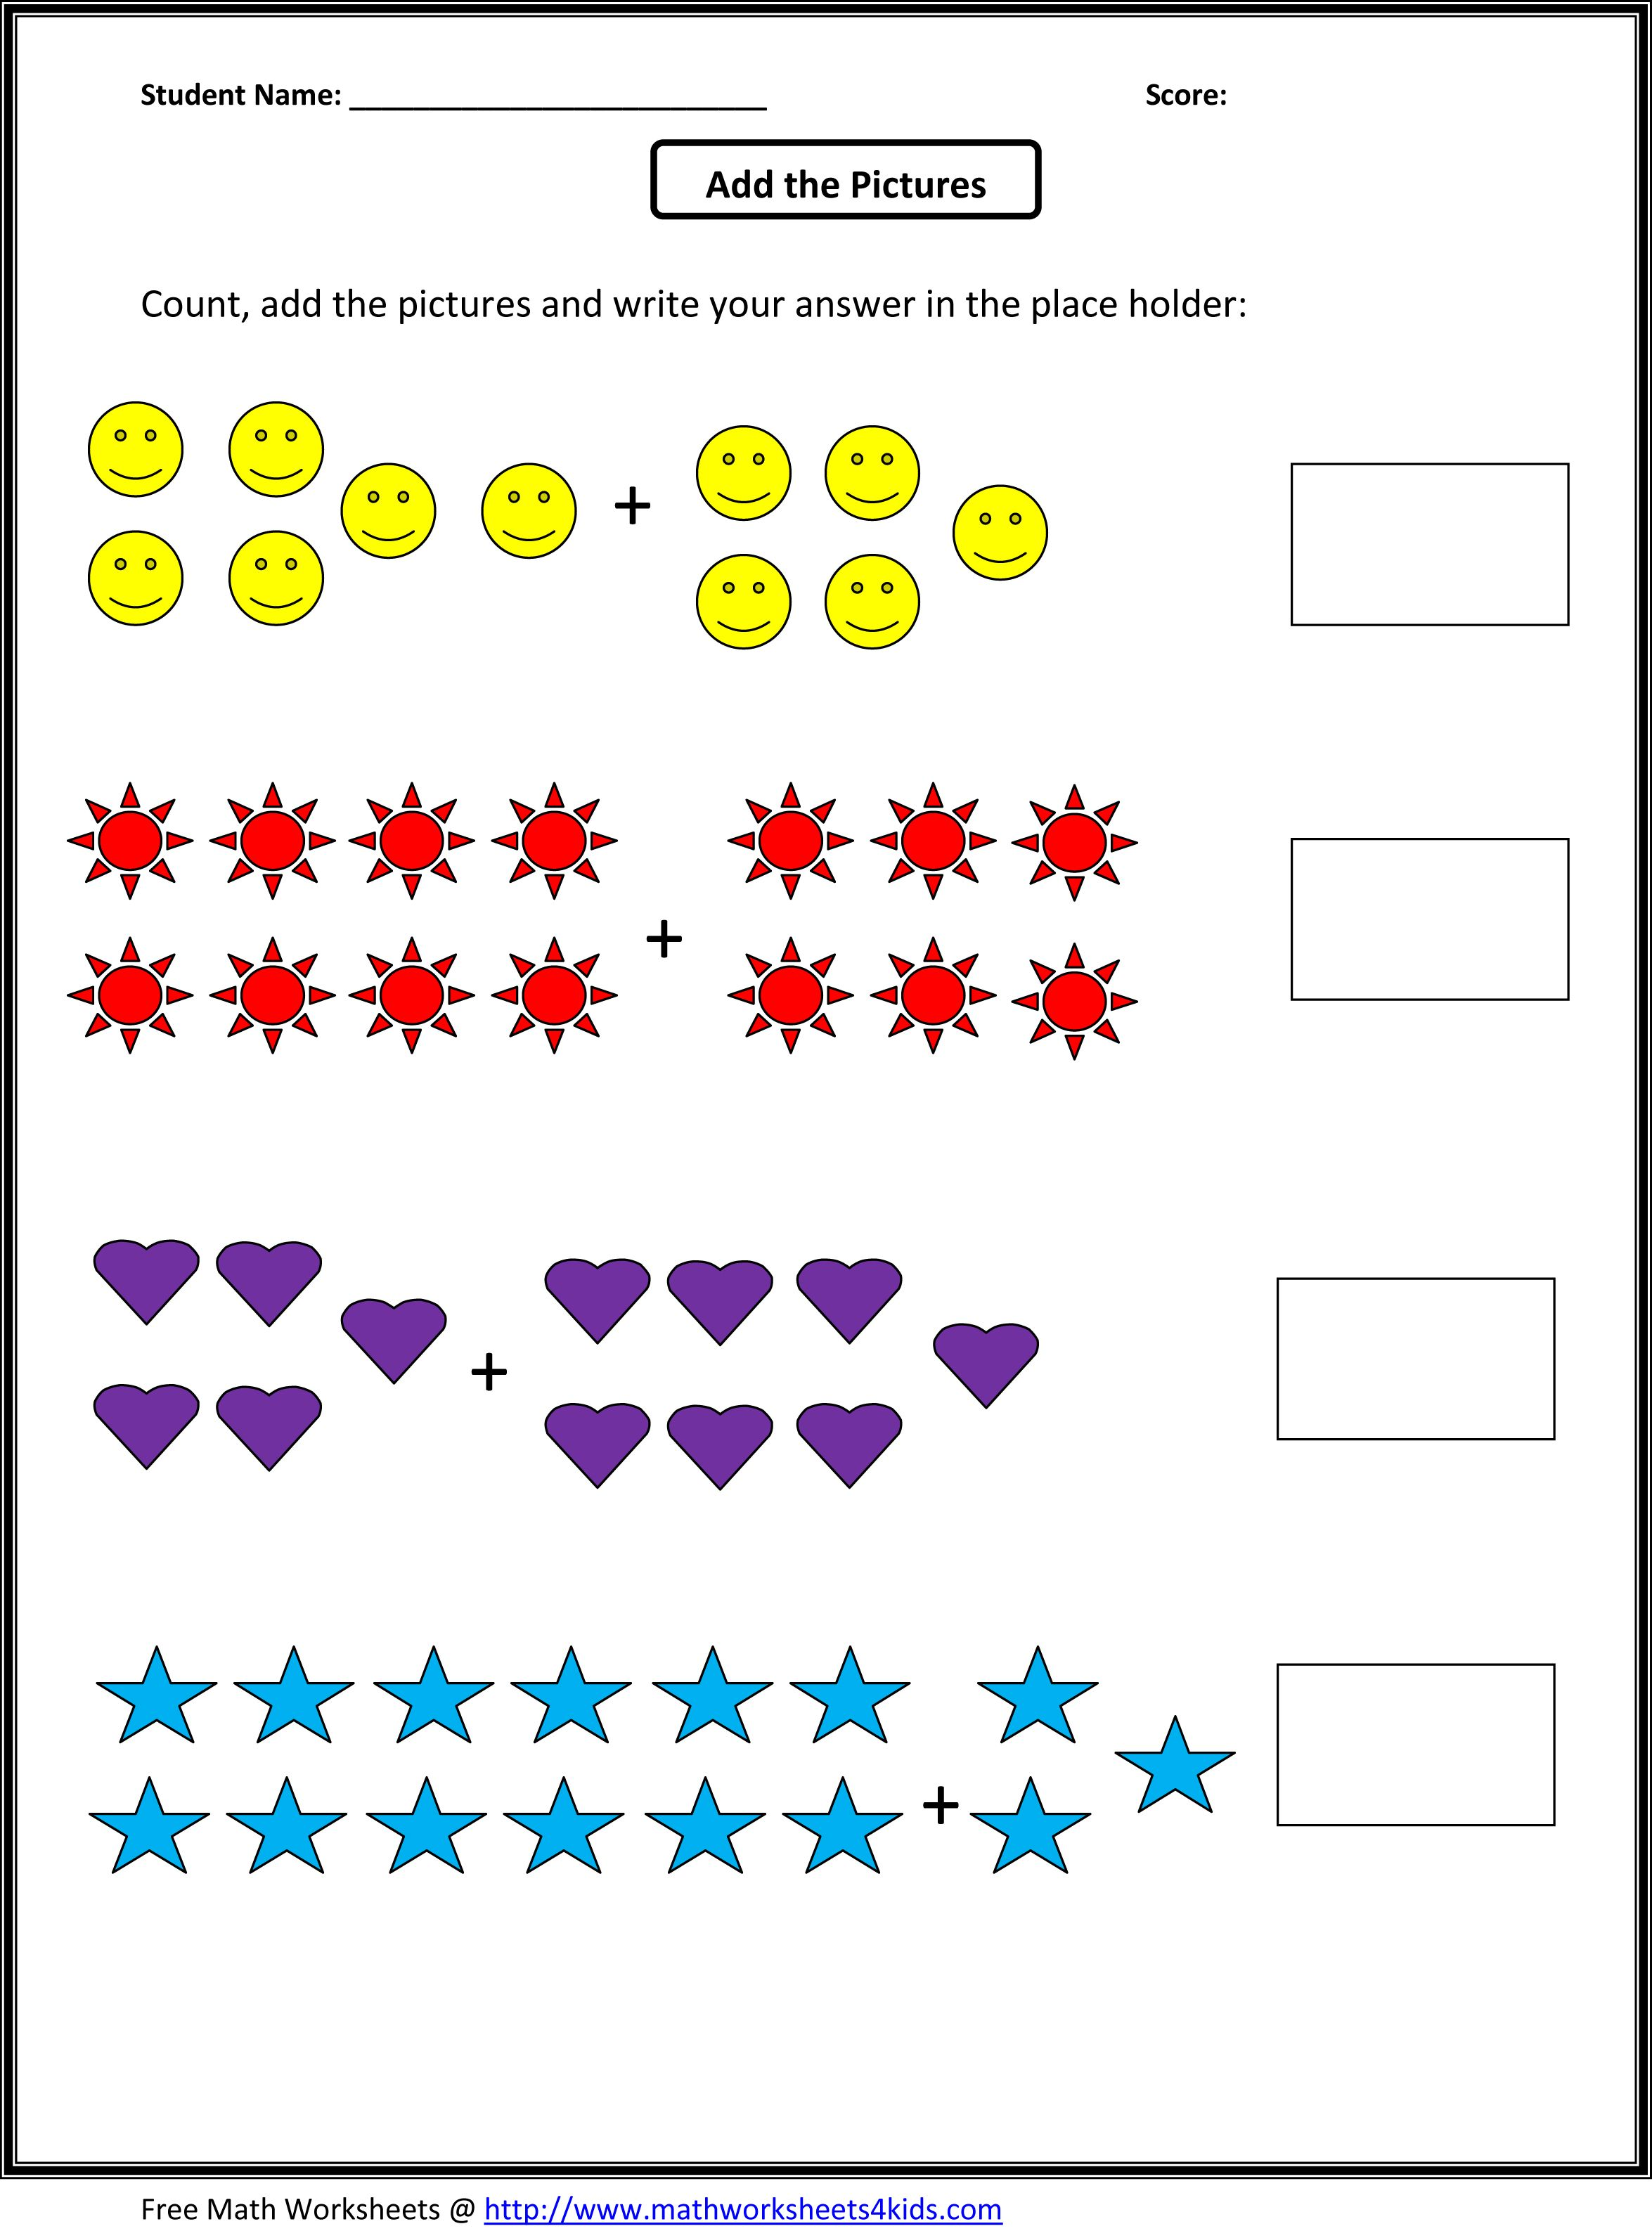 grade 1 addition math worksheets | First Grade Math Worksheets